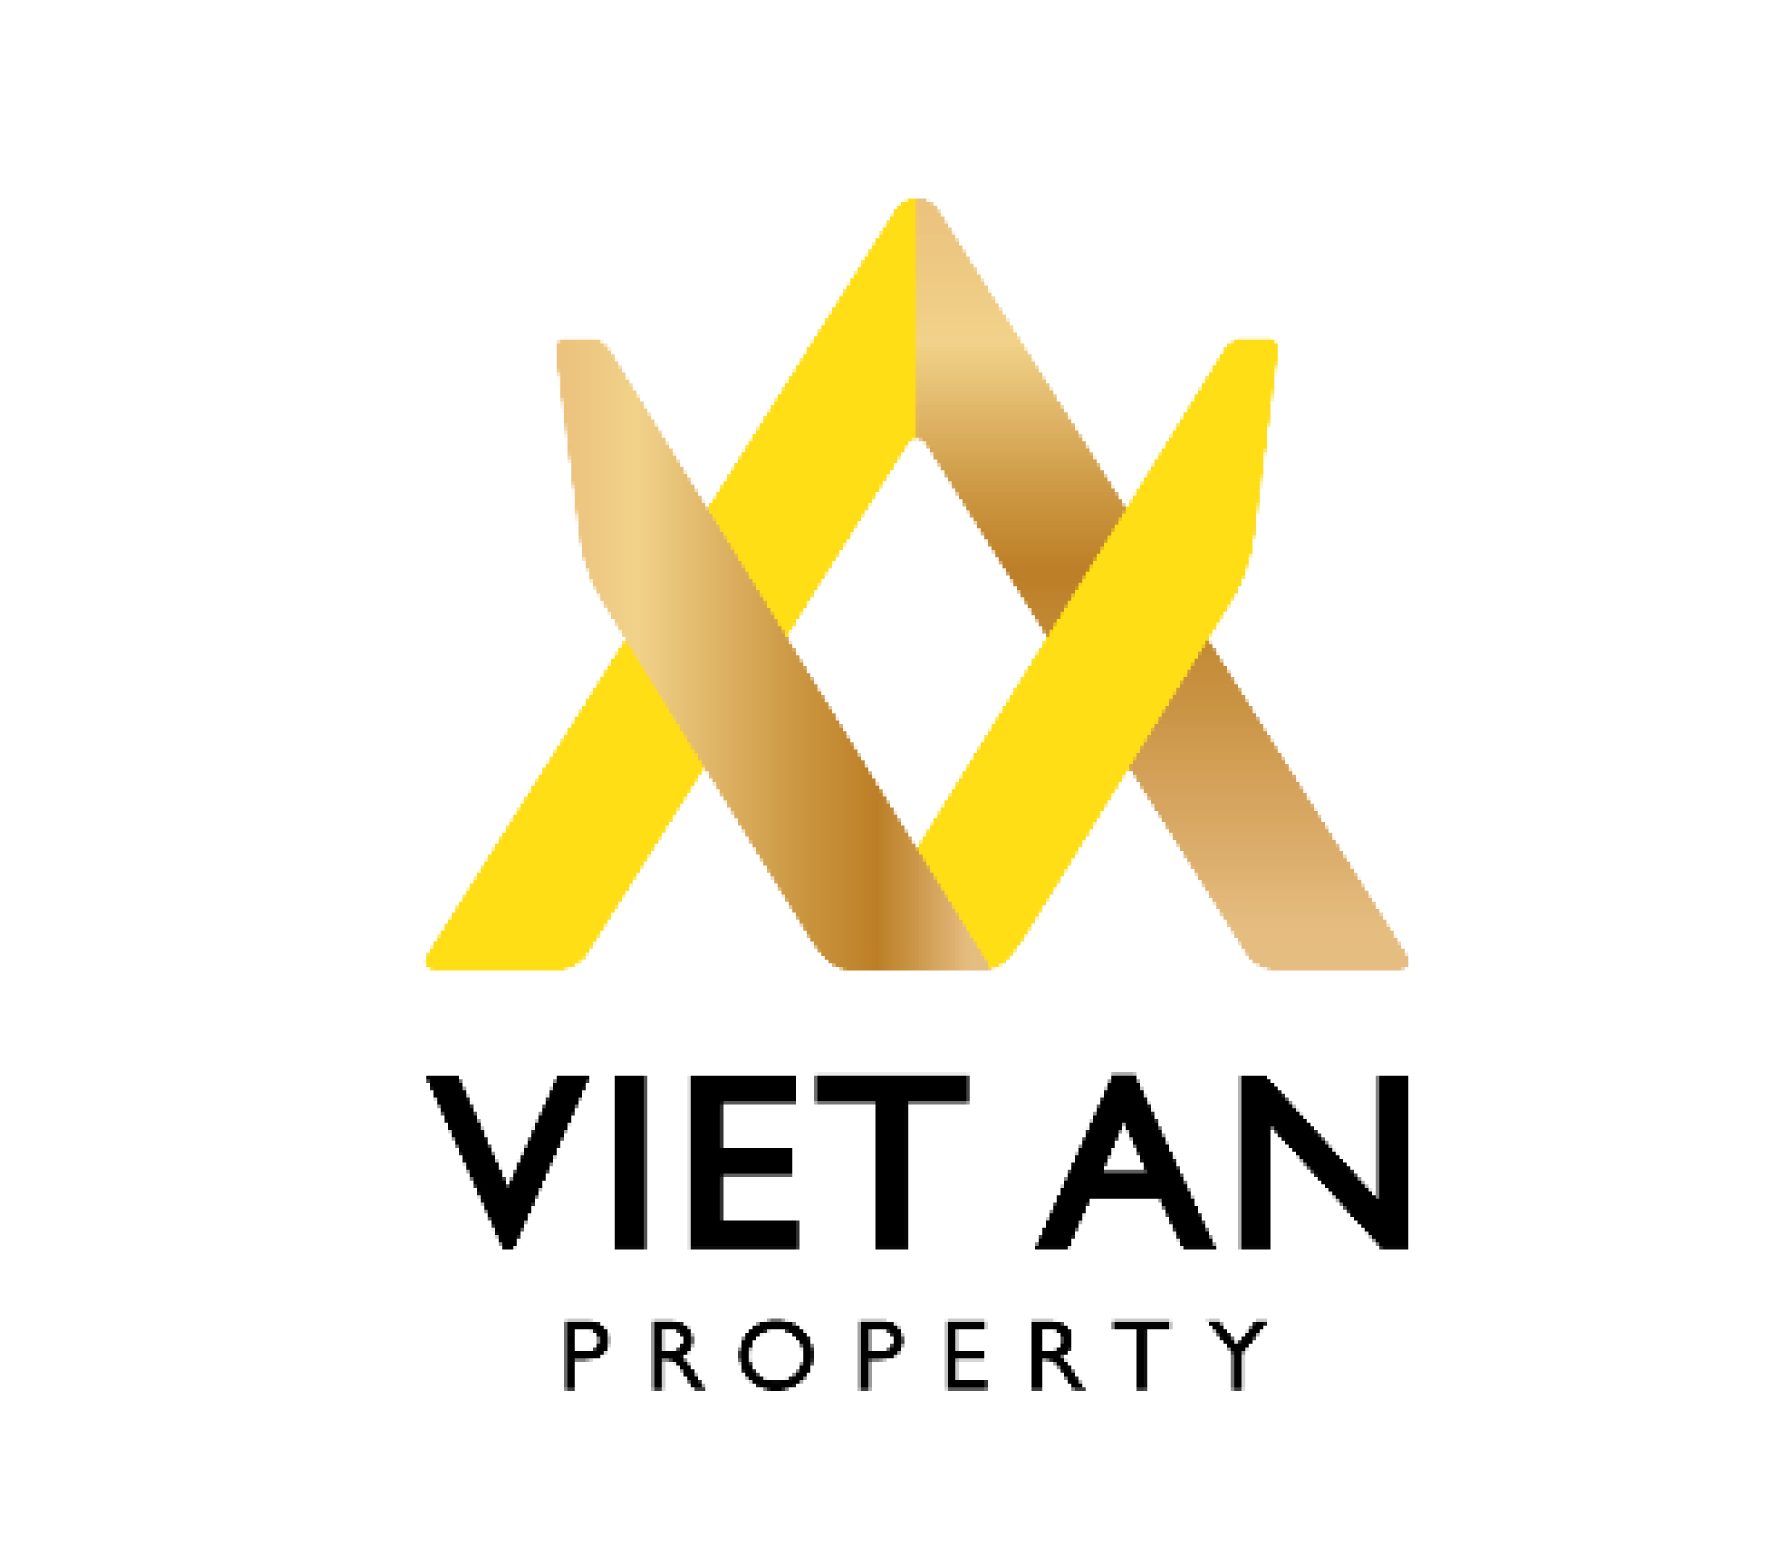 vietanproperty_logo